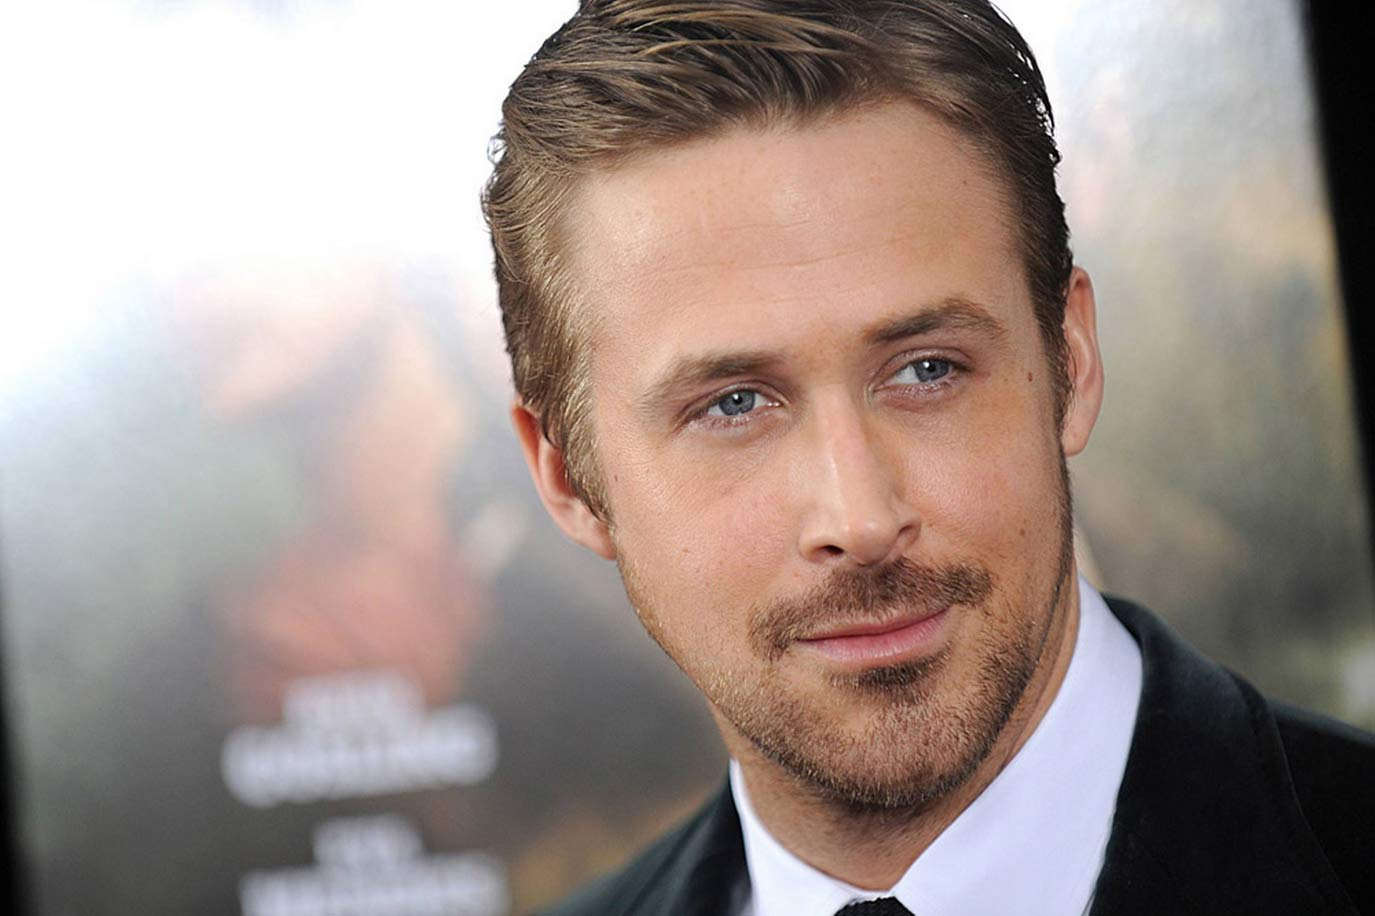 ryan-gosling-sexy-suit-hollywood-hot-sexiest-actor-men-movie-star-crazy-stupid-love-best-hairstyle